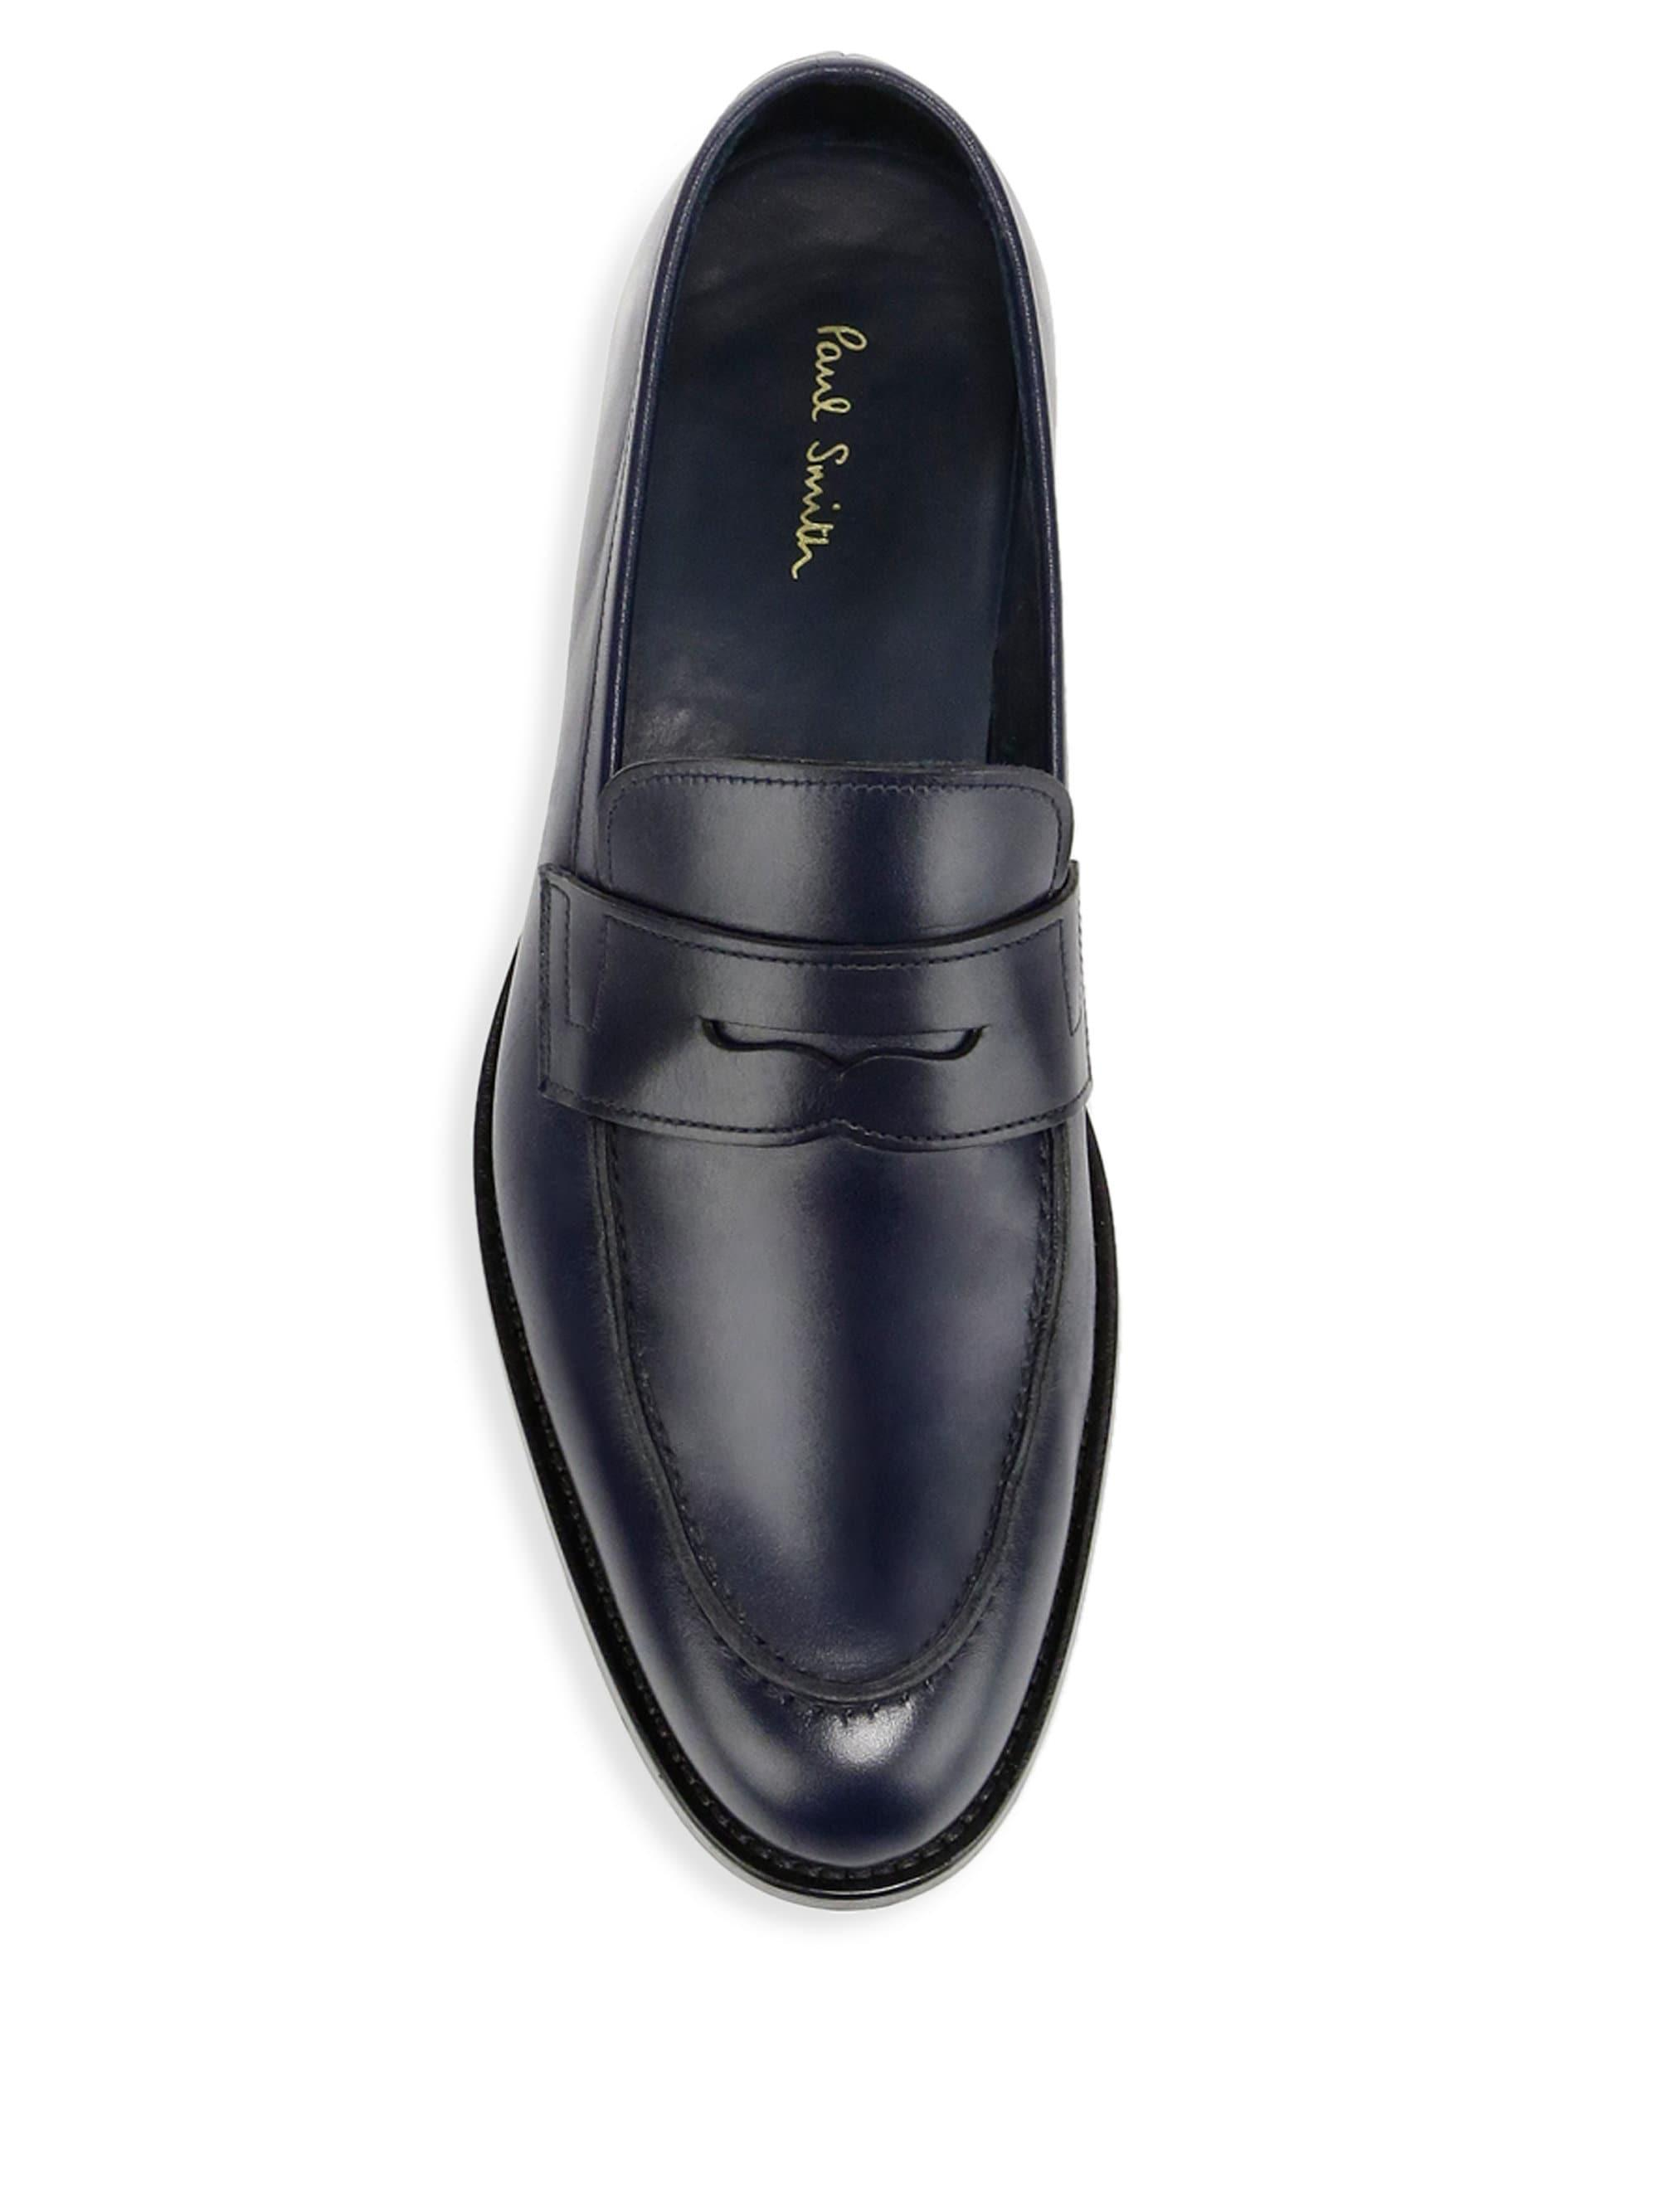 43e9fa84e85 Paul Smith Leather Penny Loafers in Blue for Men - Lyst